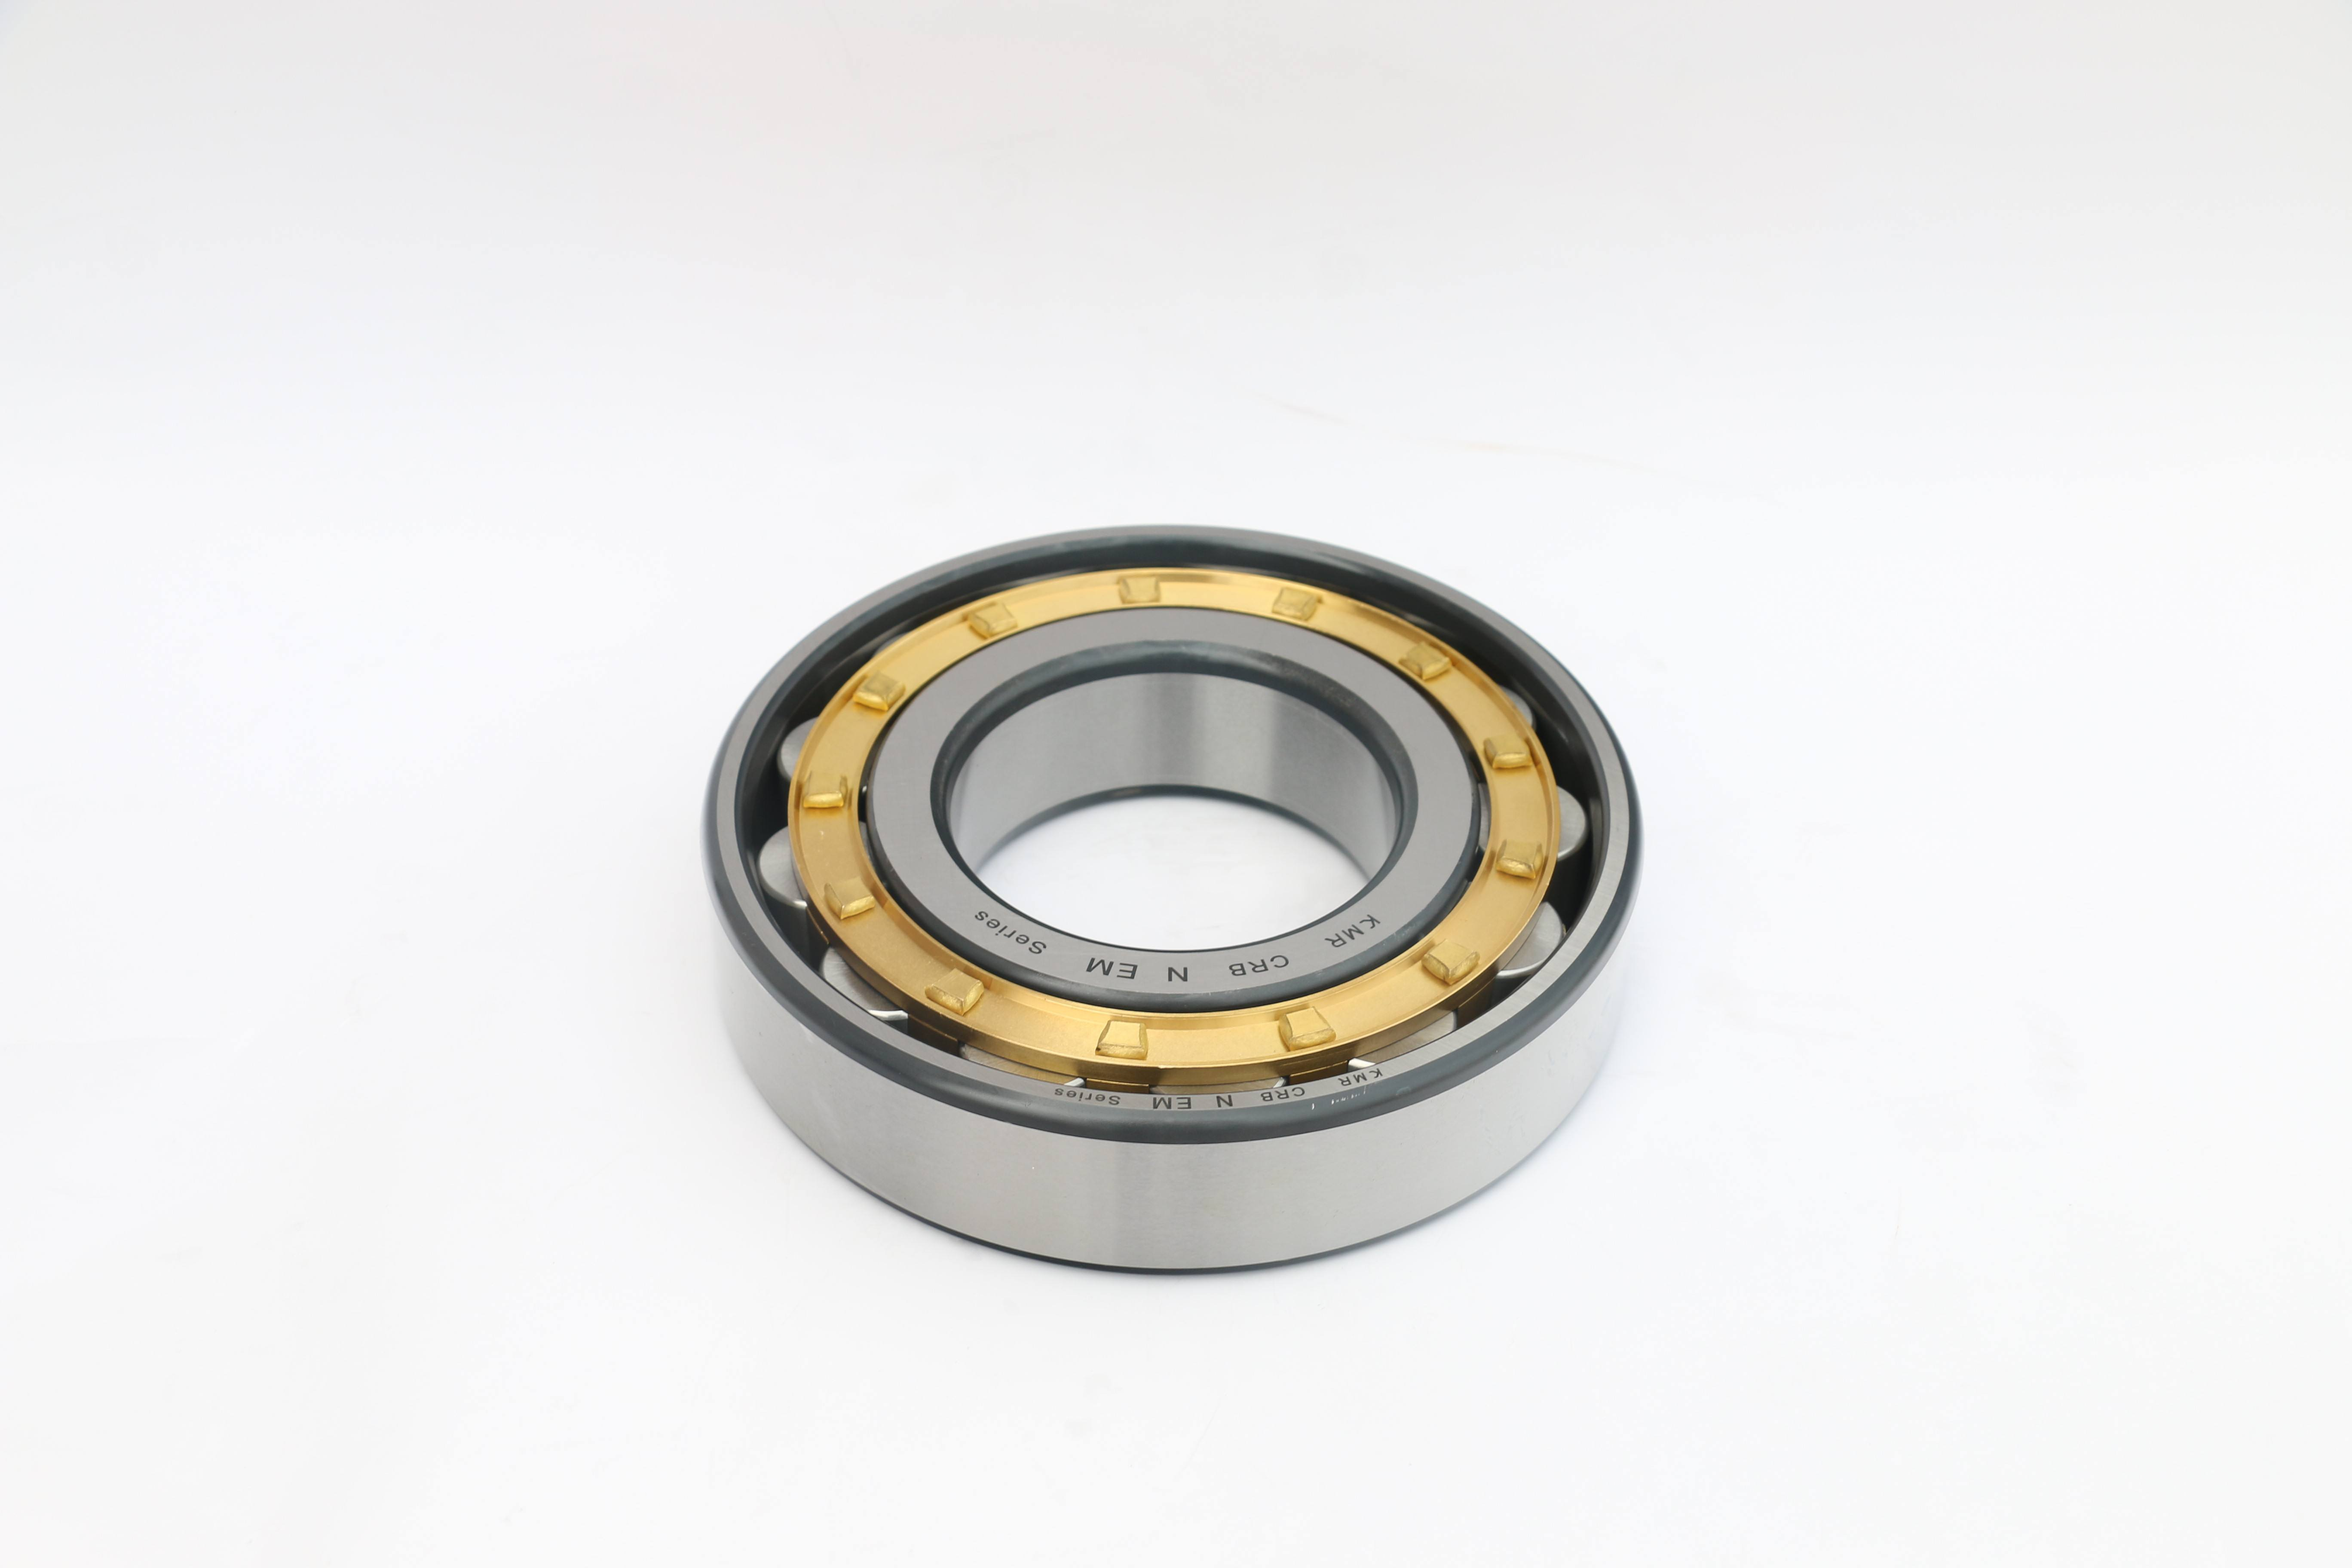 KMR NU 338 ECM 190x400x78mm Cylindrical Roller Bearing